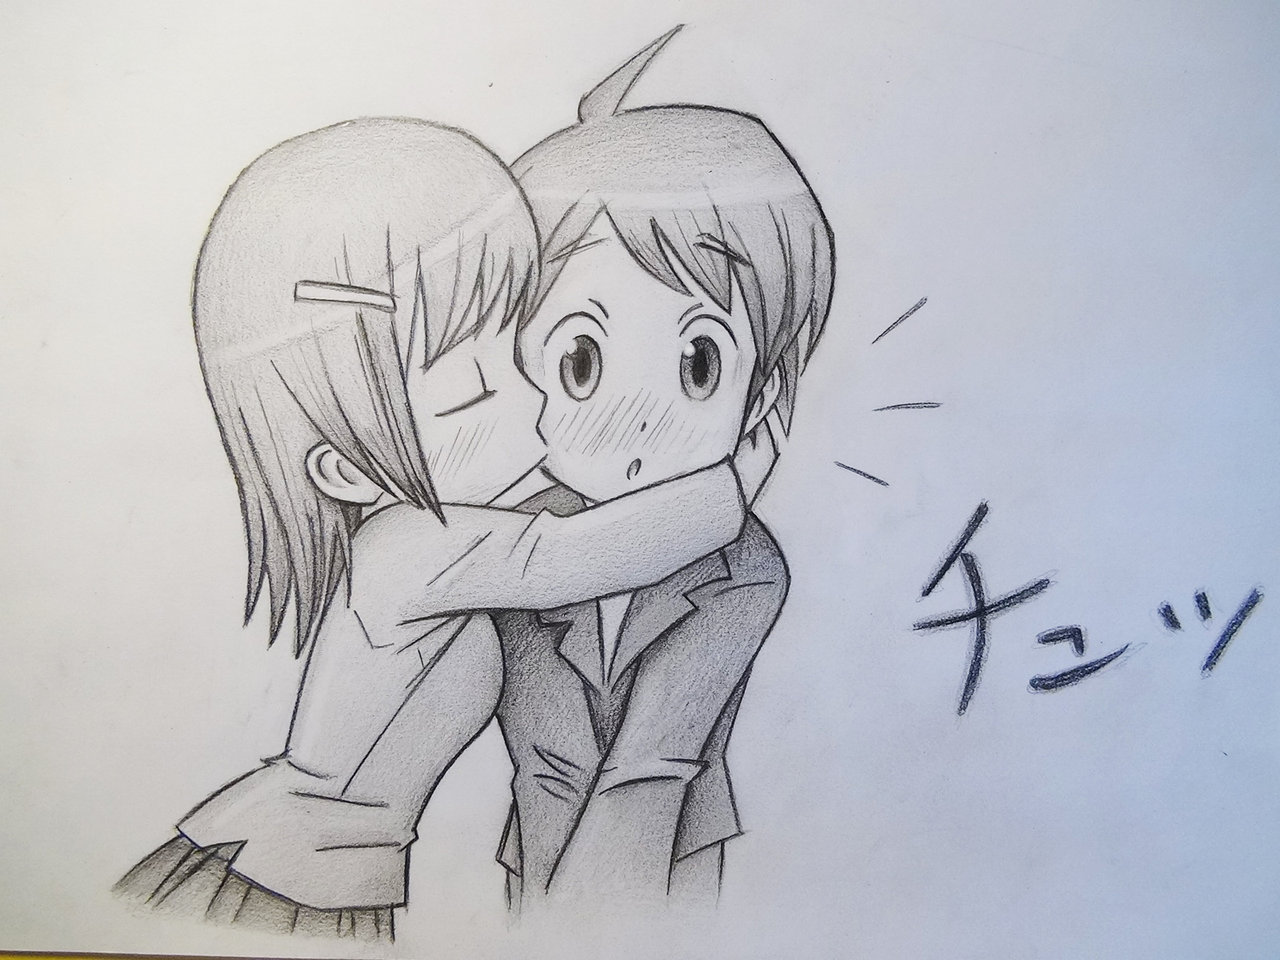 Drawn kisses cheek drawing To kissing Kissing Draw Chibis